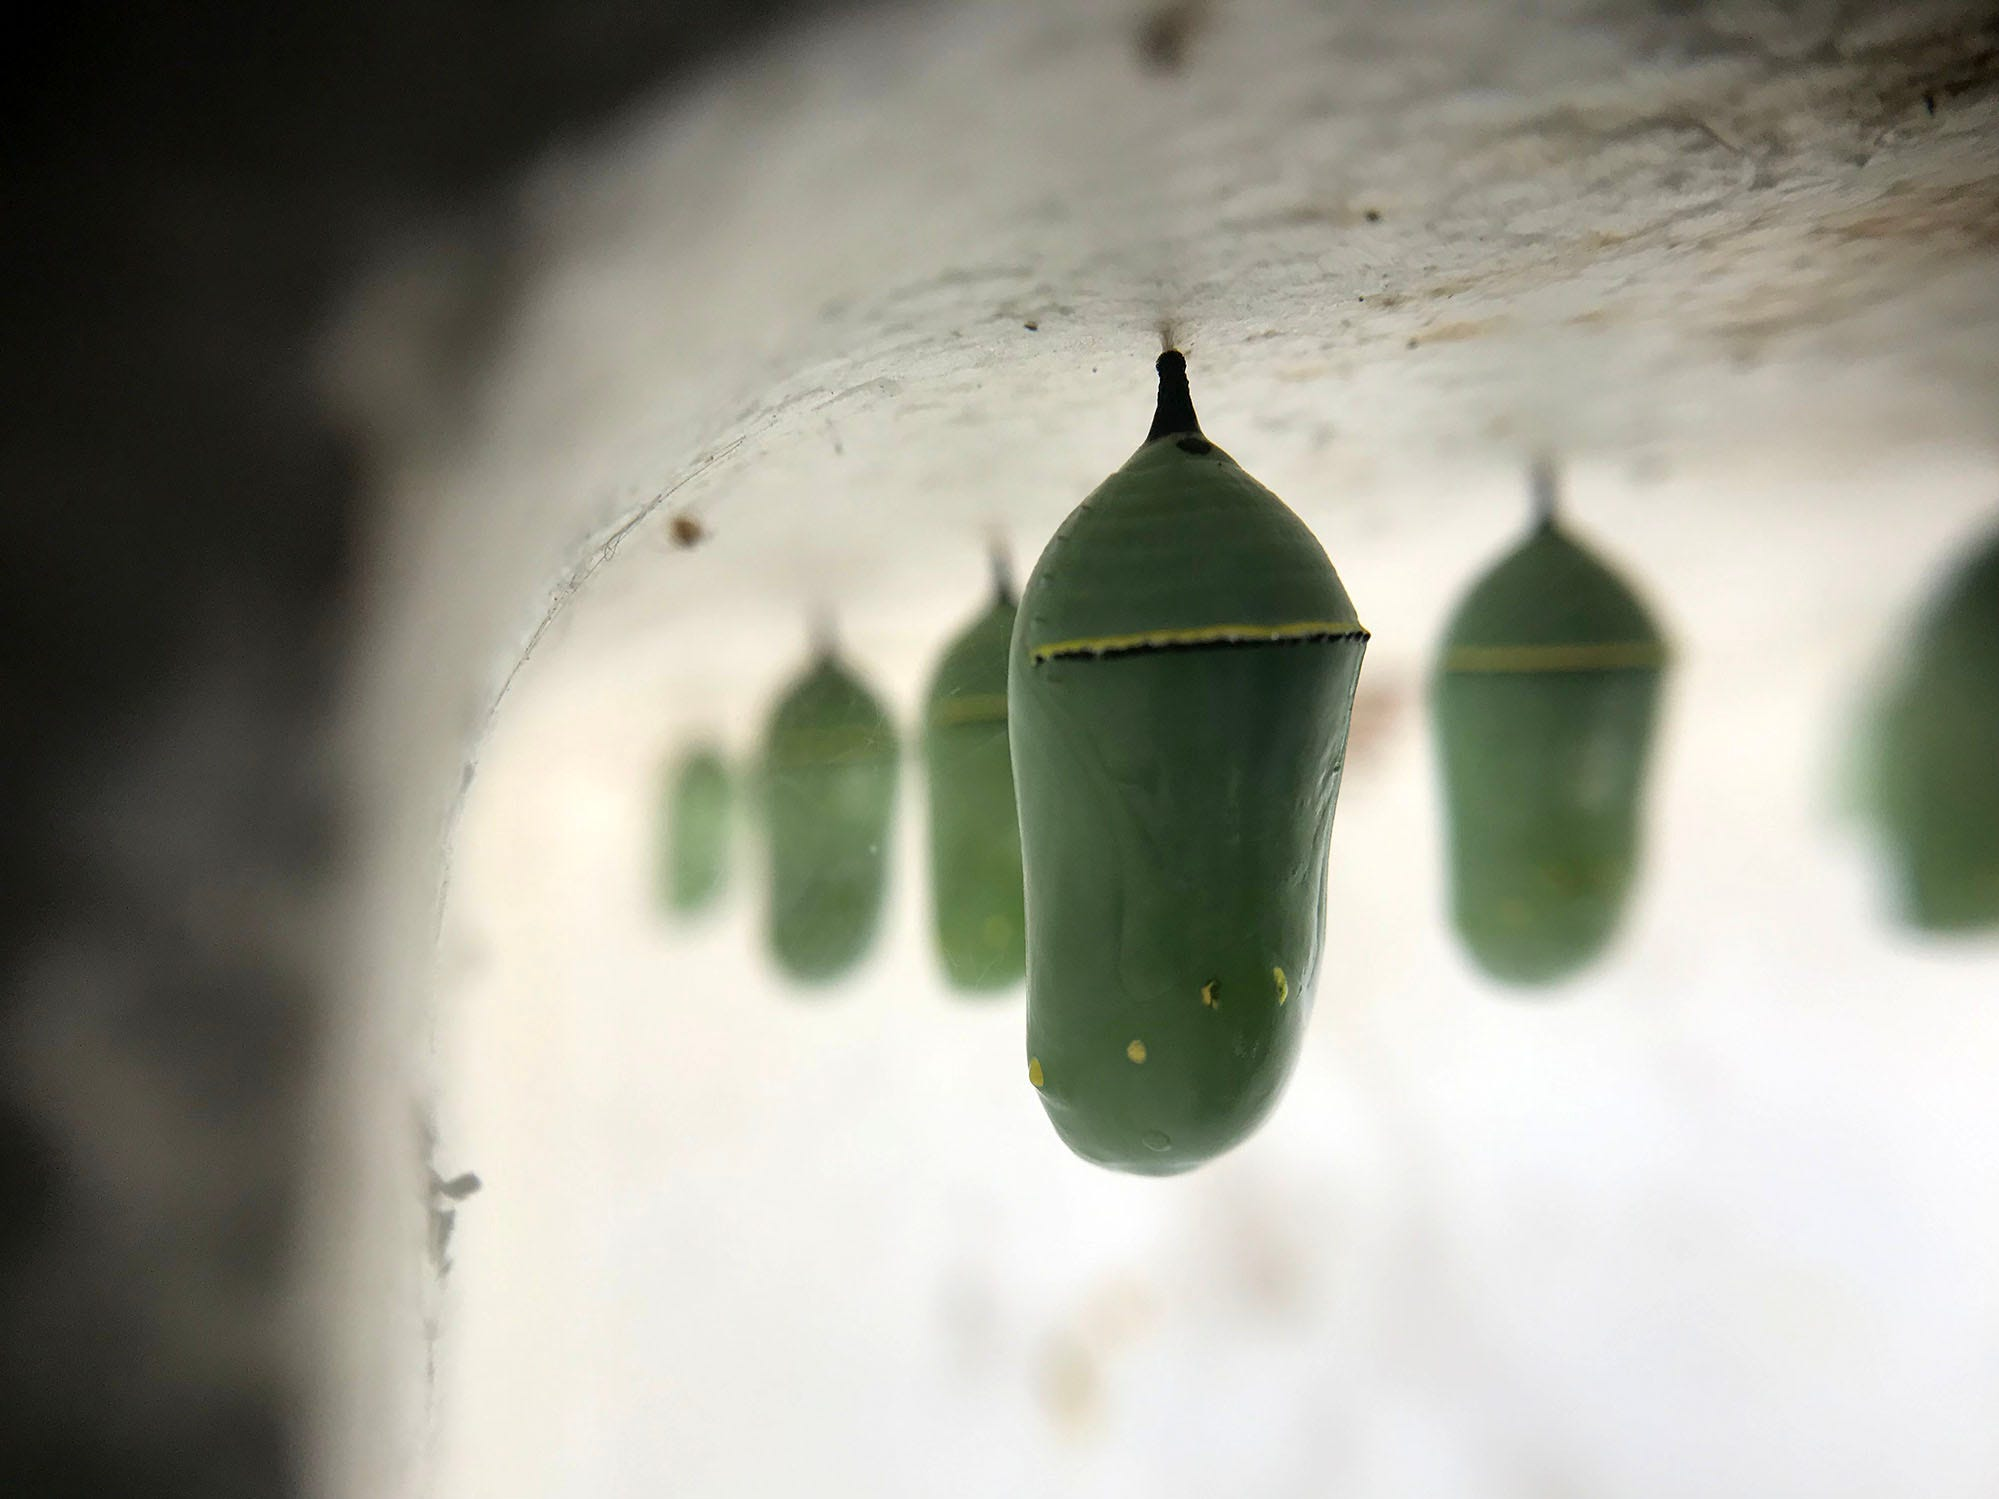 Chrysalis hang in a home before they emerge as caterpillars. Vonnie Black has raised and released monarch butterflies in her Chambersburg area garage for 20 years.